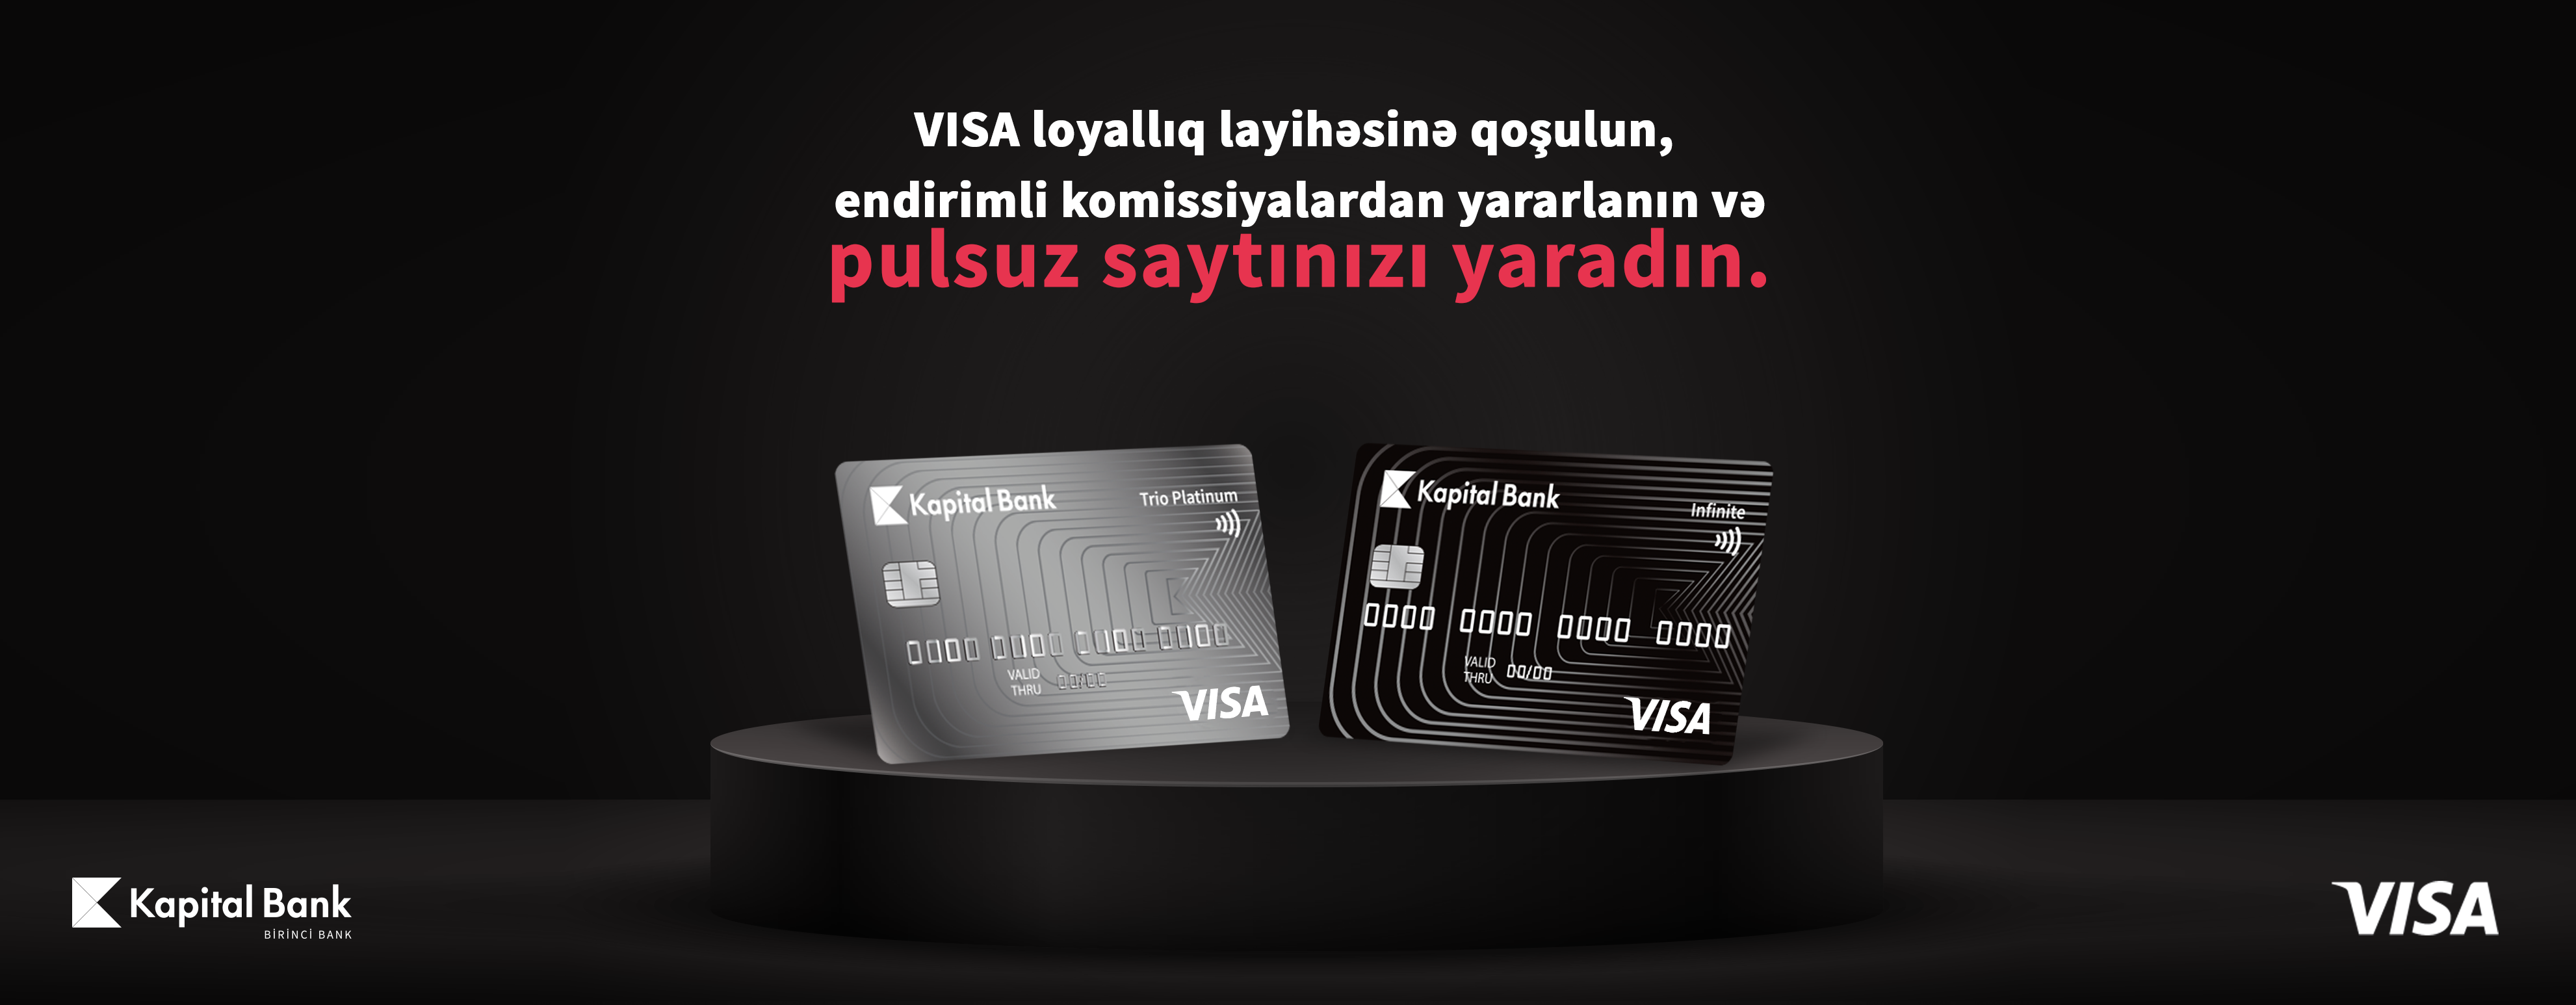 Kapital Bank offers special opportunities to partners providing discounts for Visa cardholders